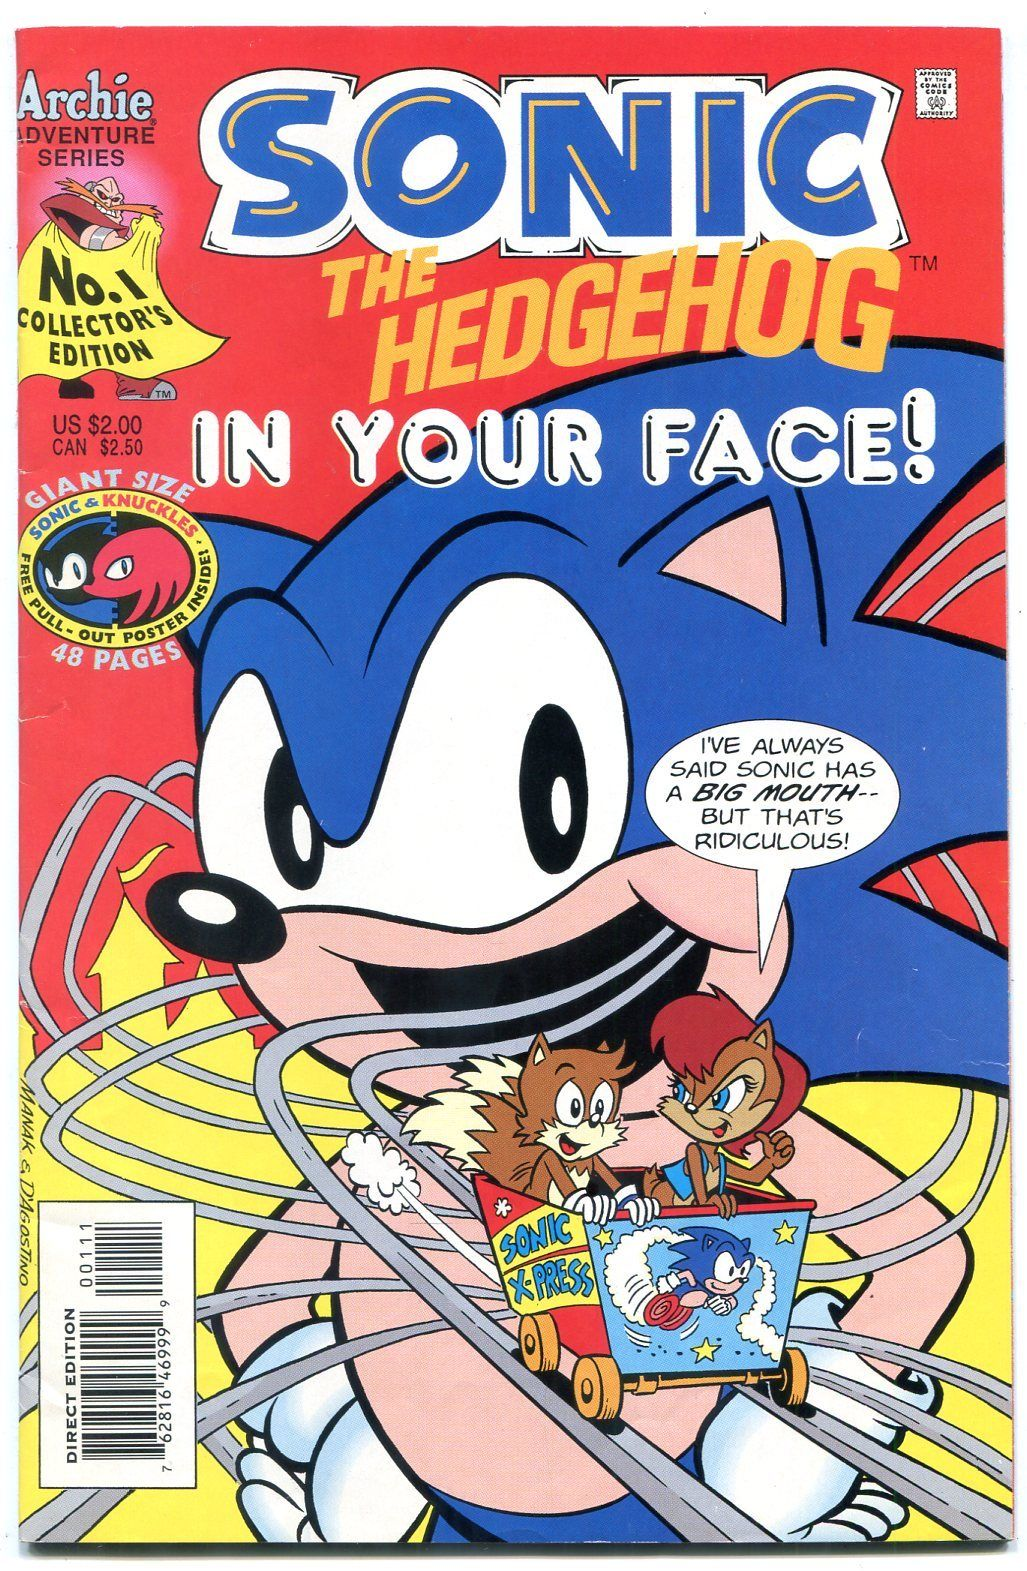 Sonic The Hedgehog In Your Face Special 1 1995 Archie Comics Sega Hipcomic